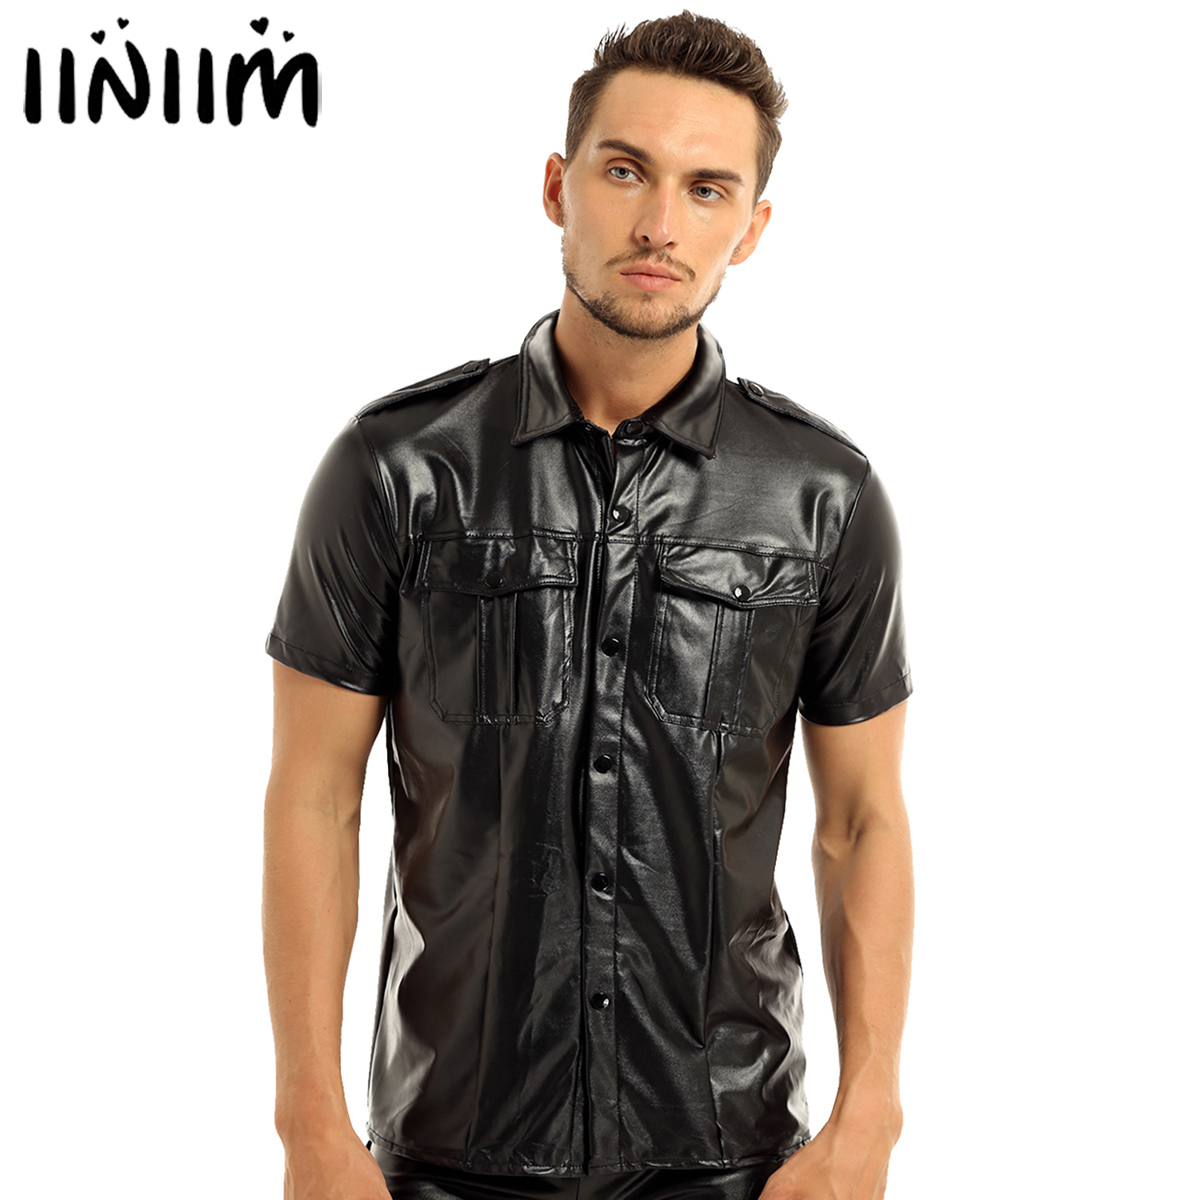 Iiniim Mens Faux Leather Short Sleeve Police Uniform Shirt With Down Collar Casual Shirts For Nightclub Party Costume